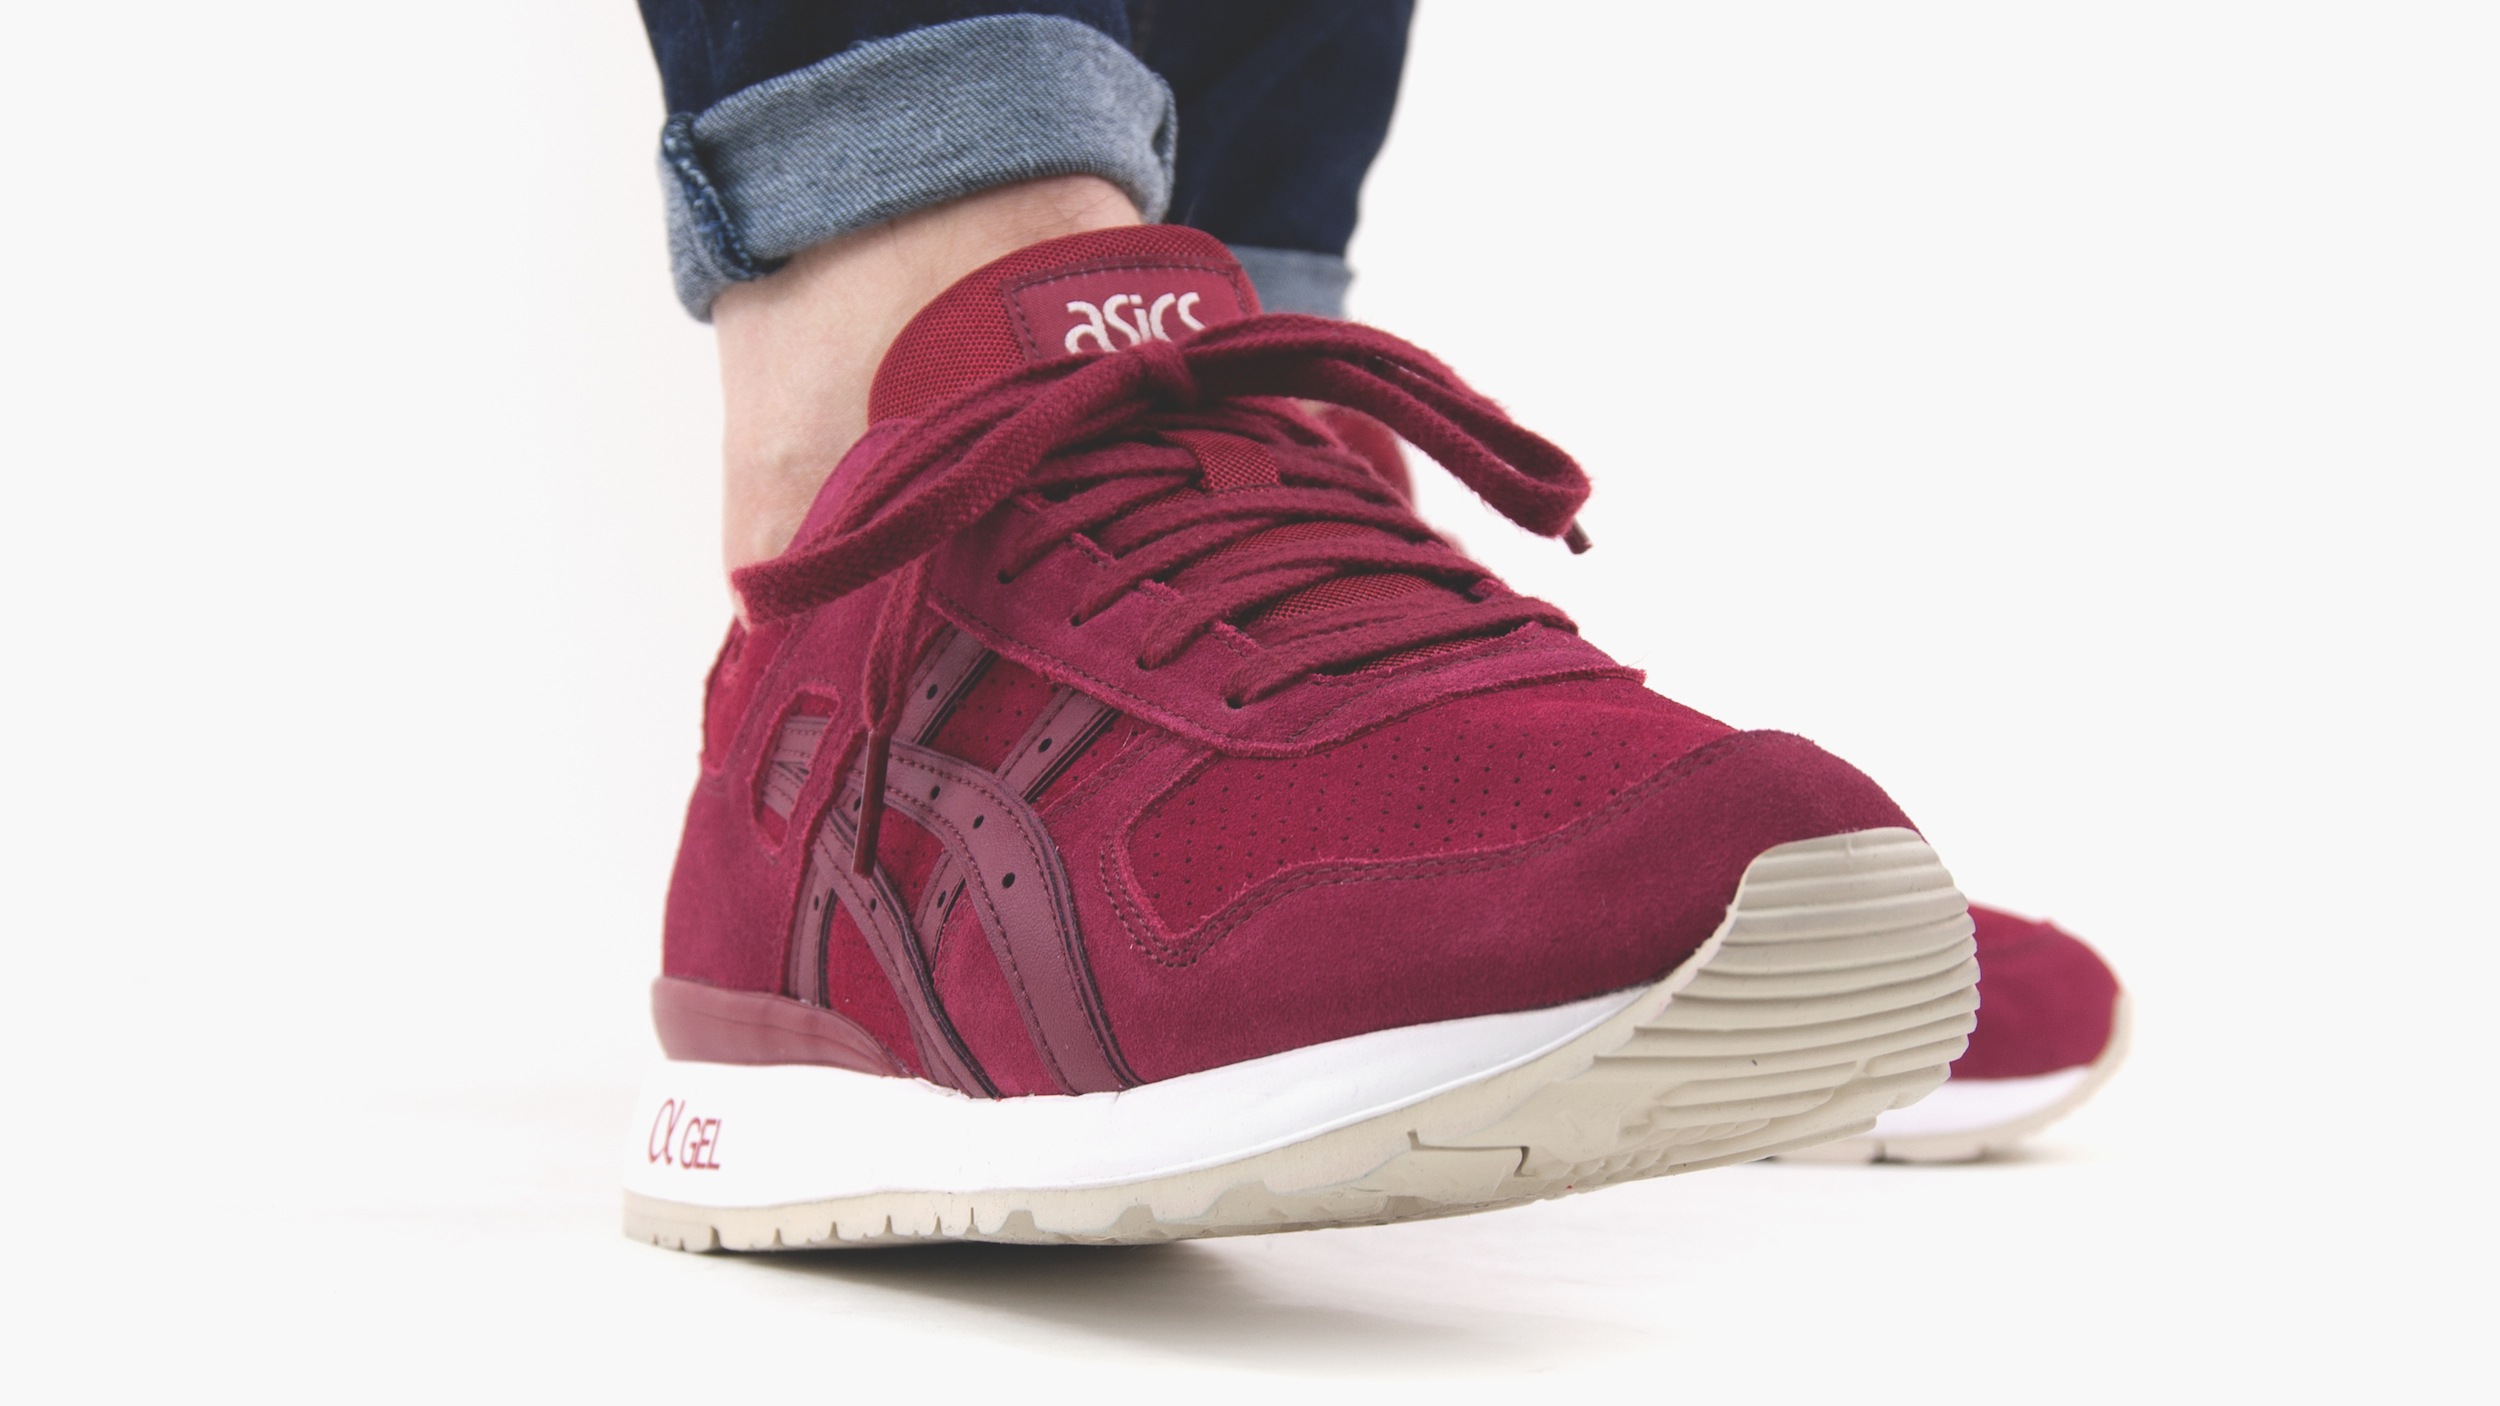 asics-gt-ii-suede-pack-MATE-Promo-6